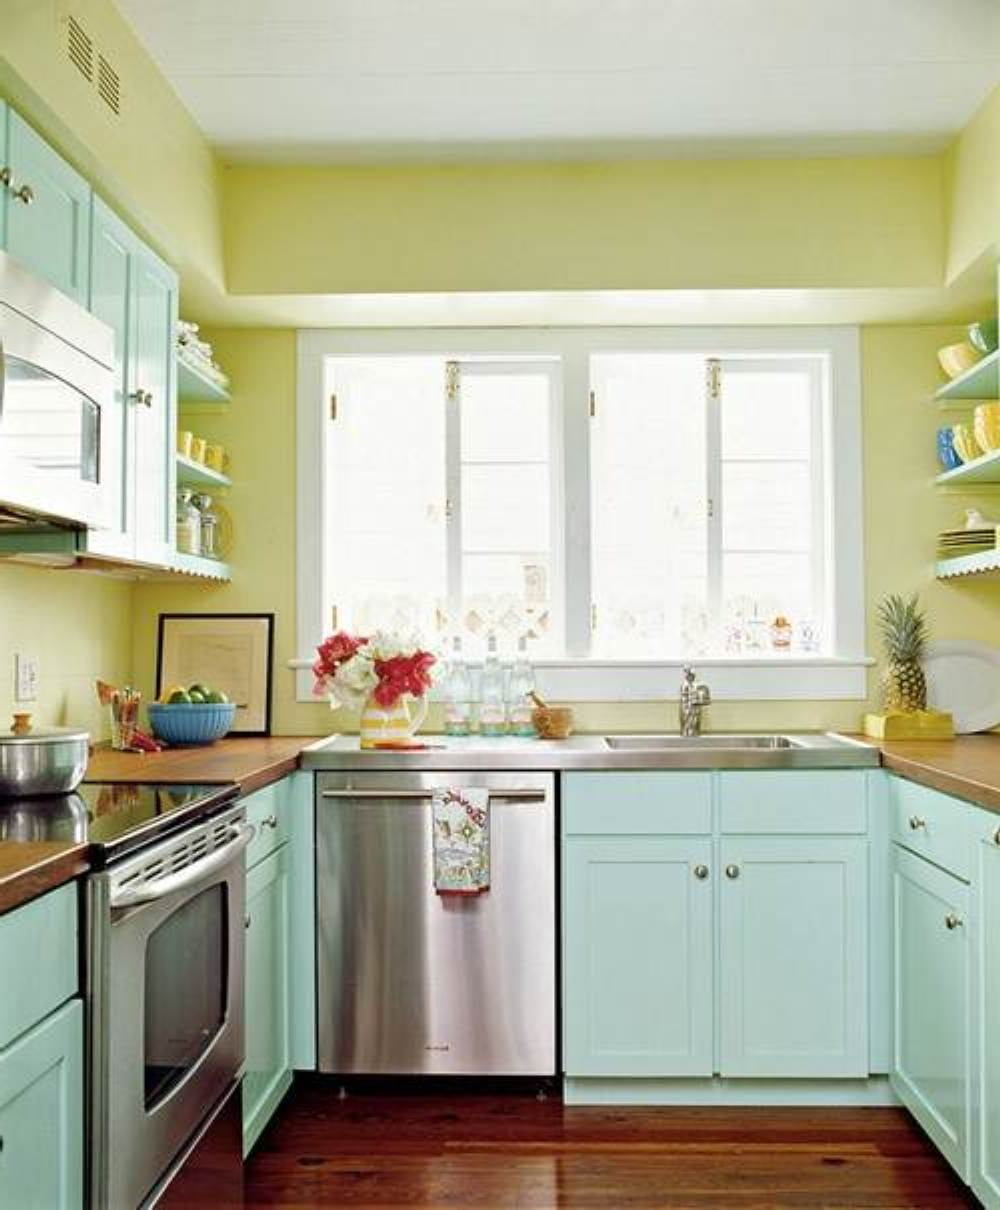 Home Decorating Ideas Kitchen New Decoration Small Colors: 57+ Small Kitchen Ideas That Prove Size Doesn't Matter